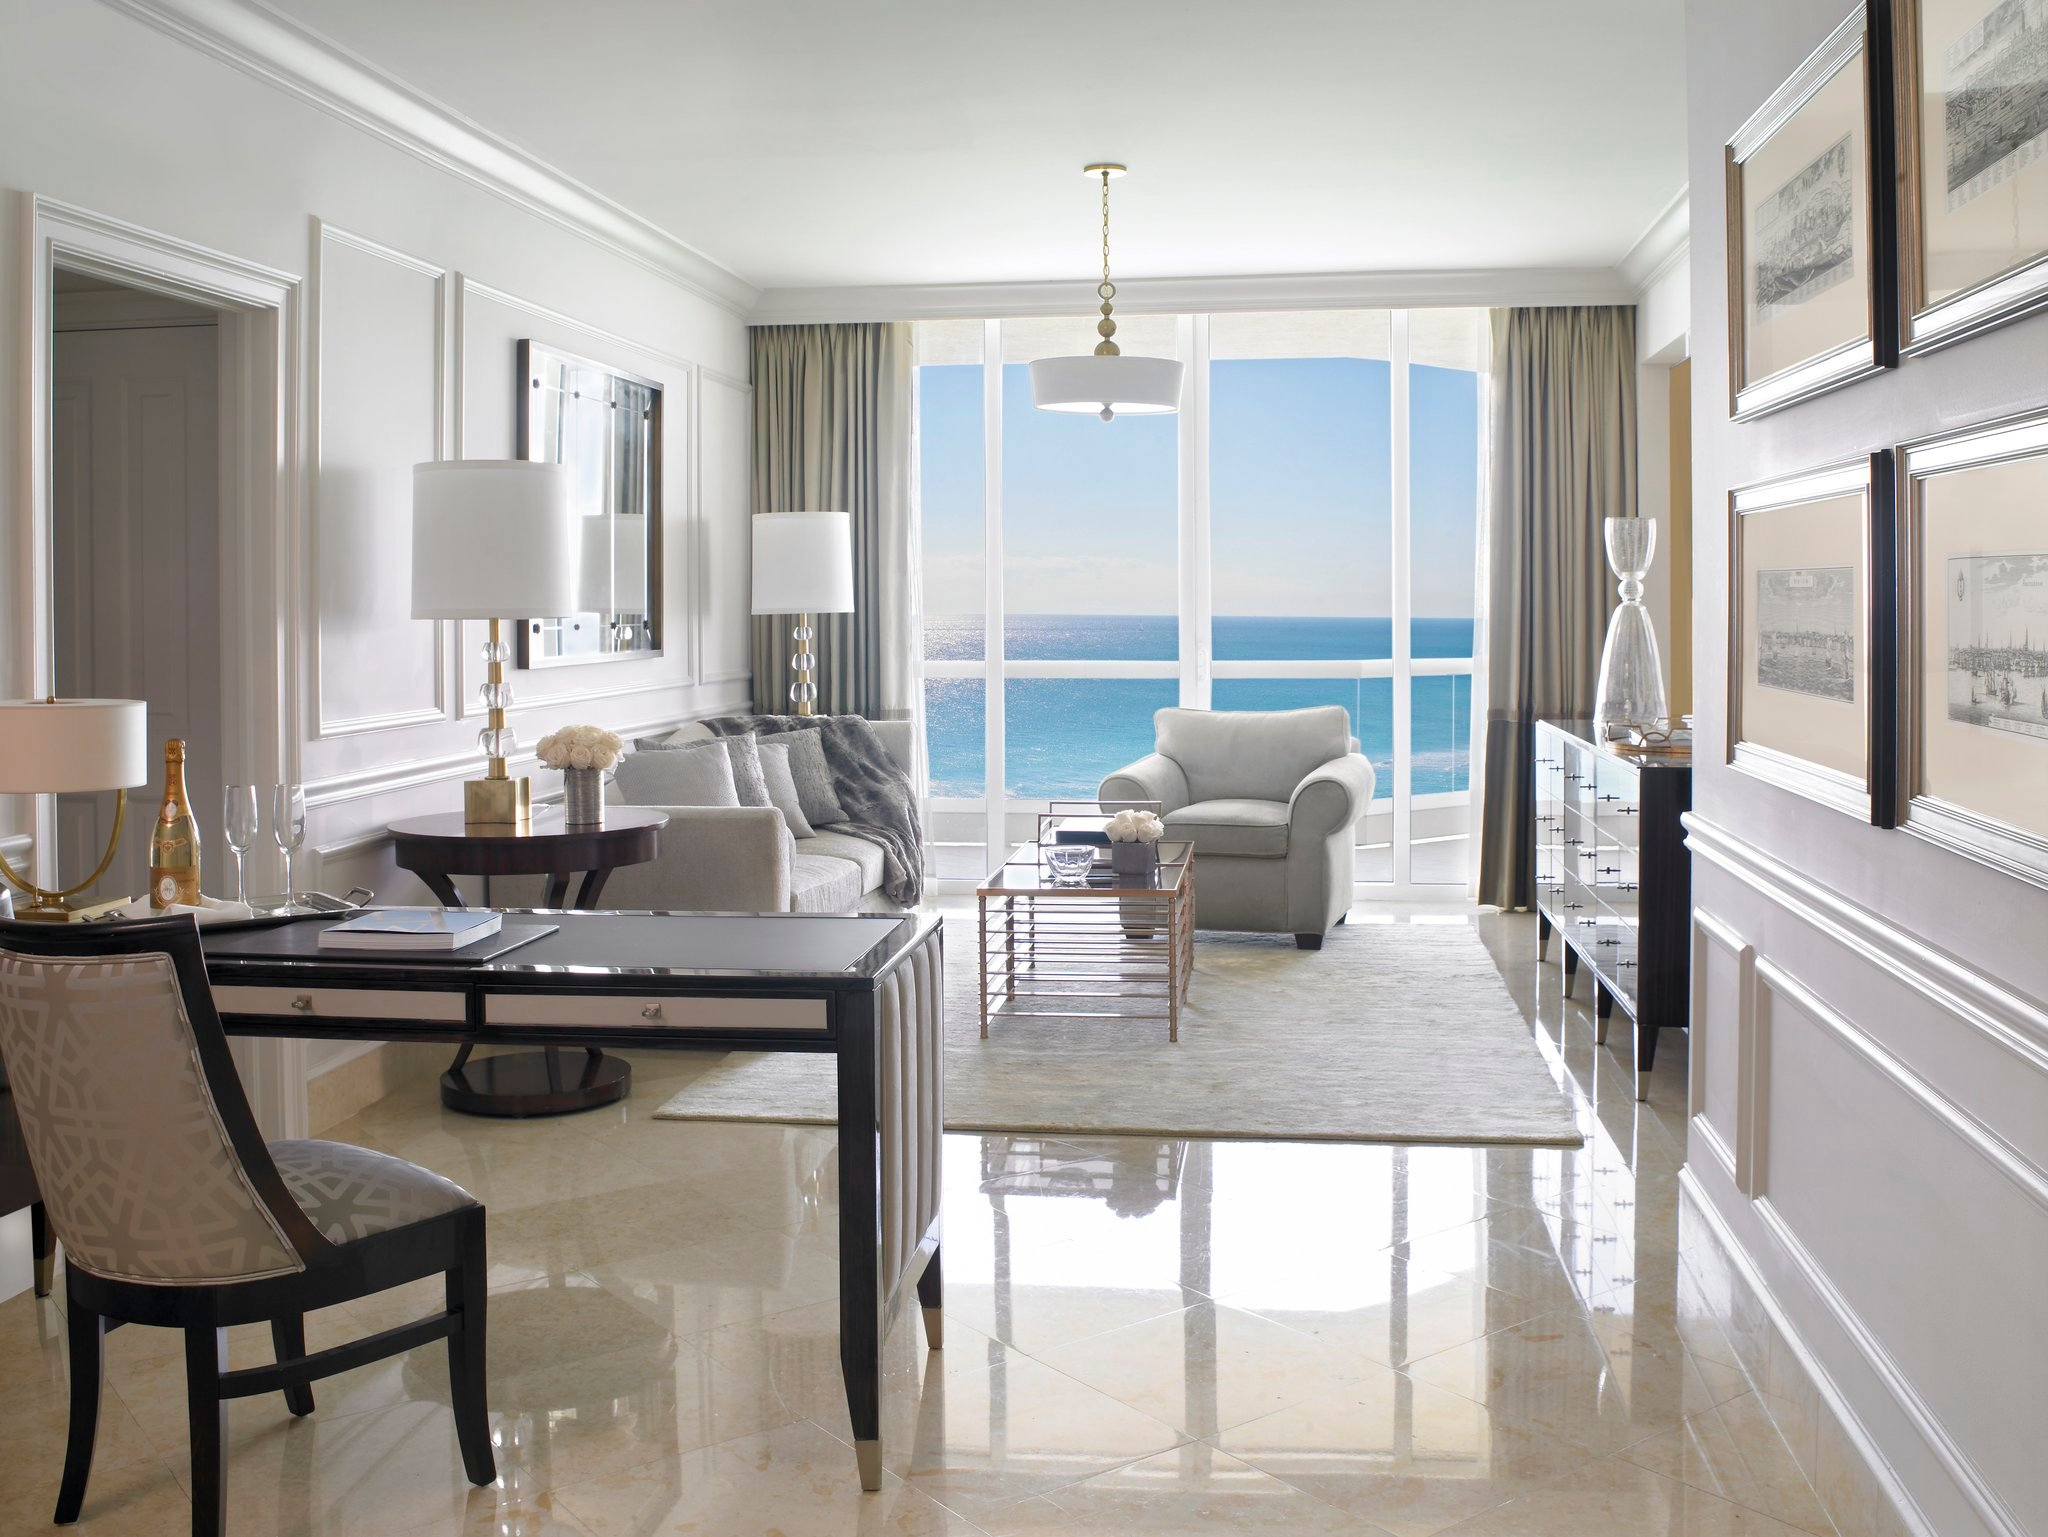 Acqualina Resort  amp  Spa on the Beach. Acqualina Resort   Spa on the Beach   UPDATED 2017 Reviews   Price